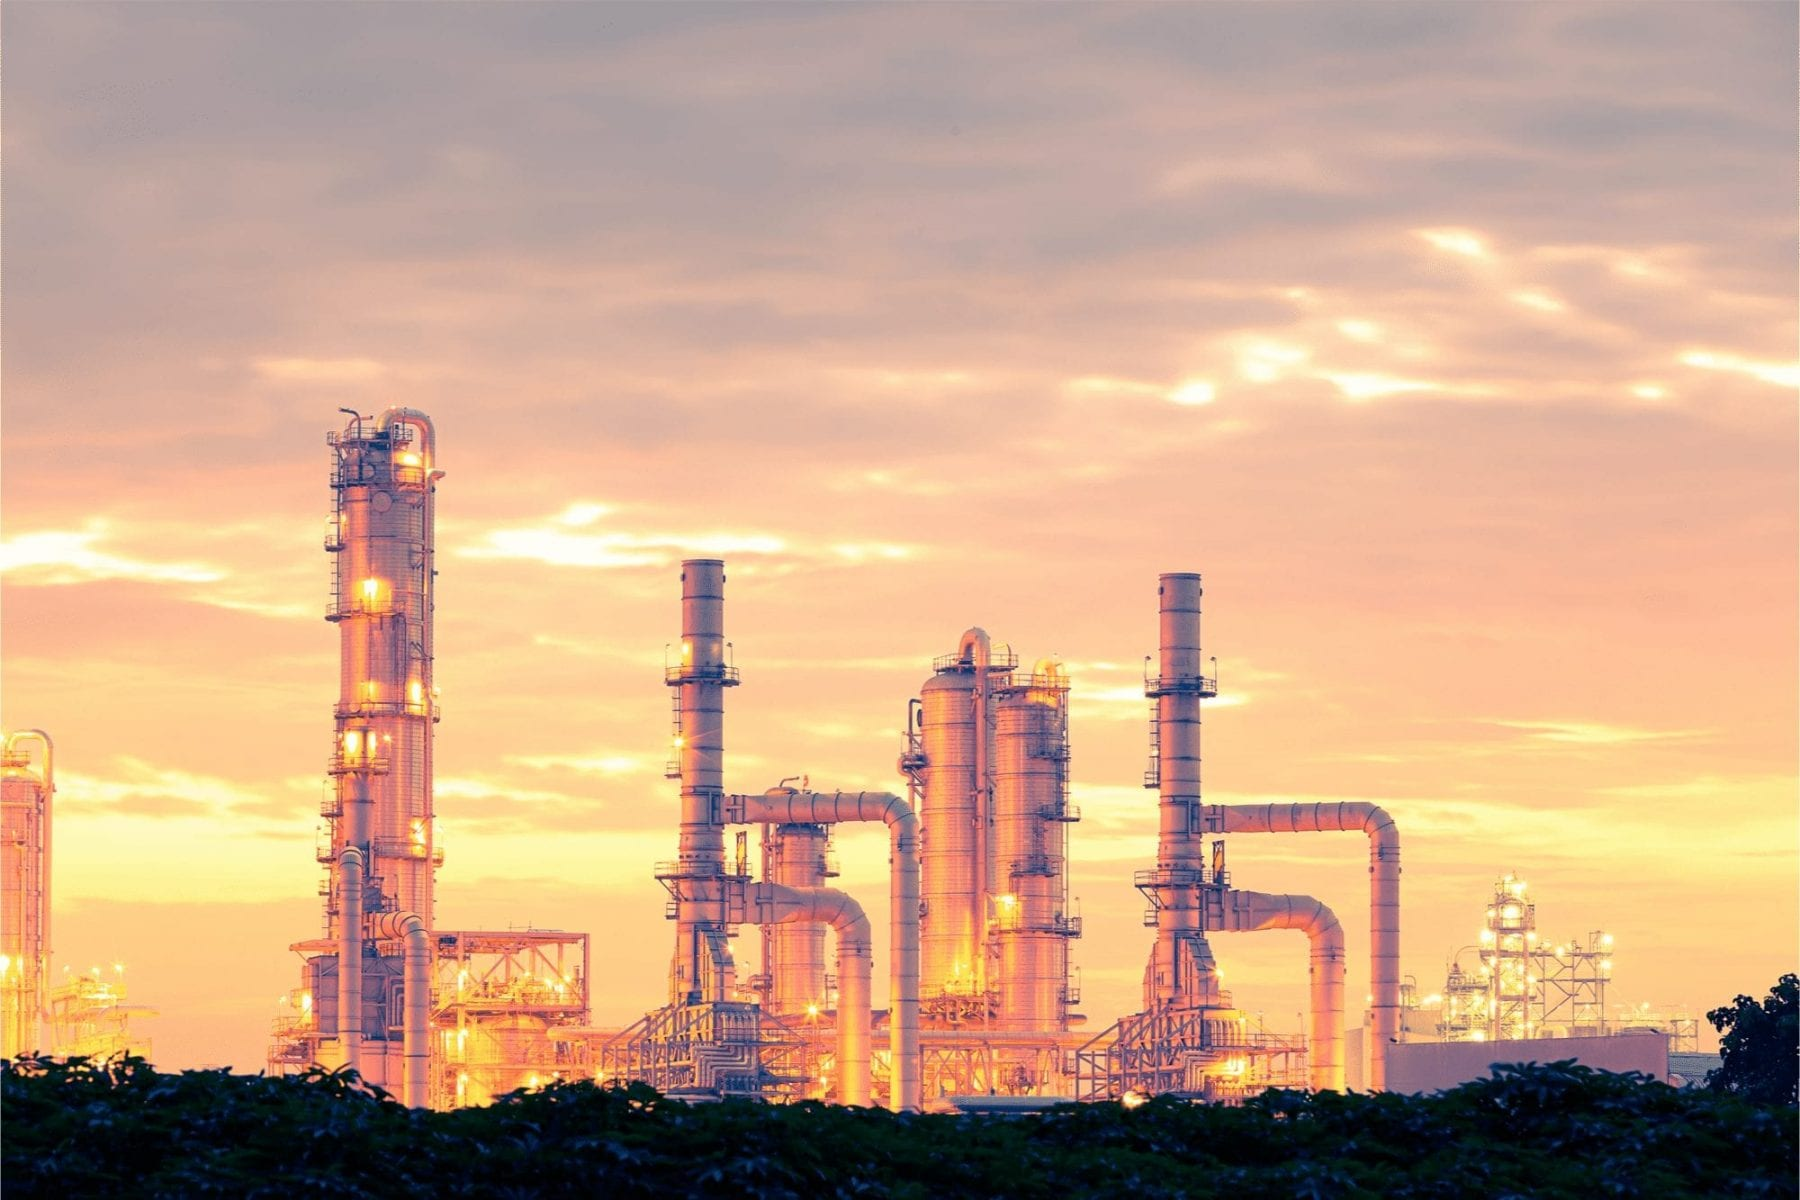 oil production facility at sunset